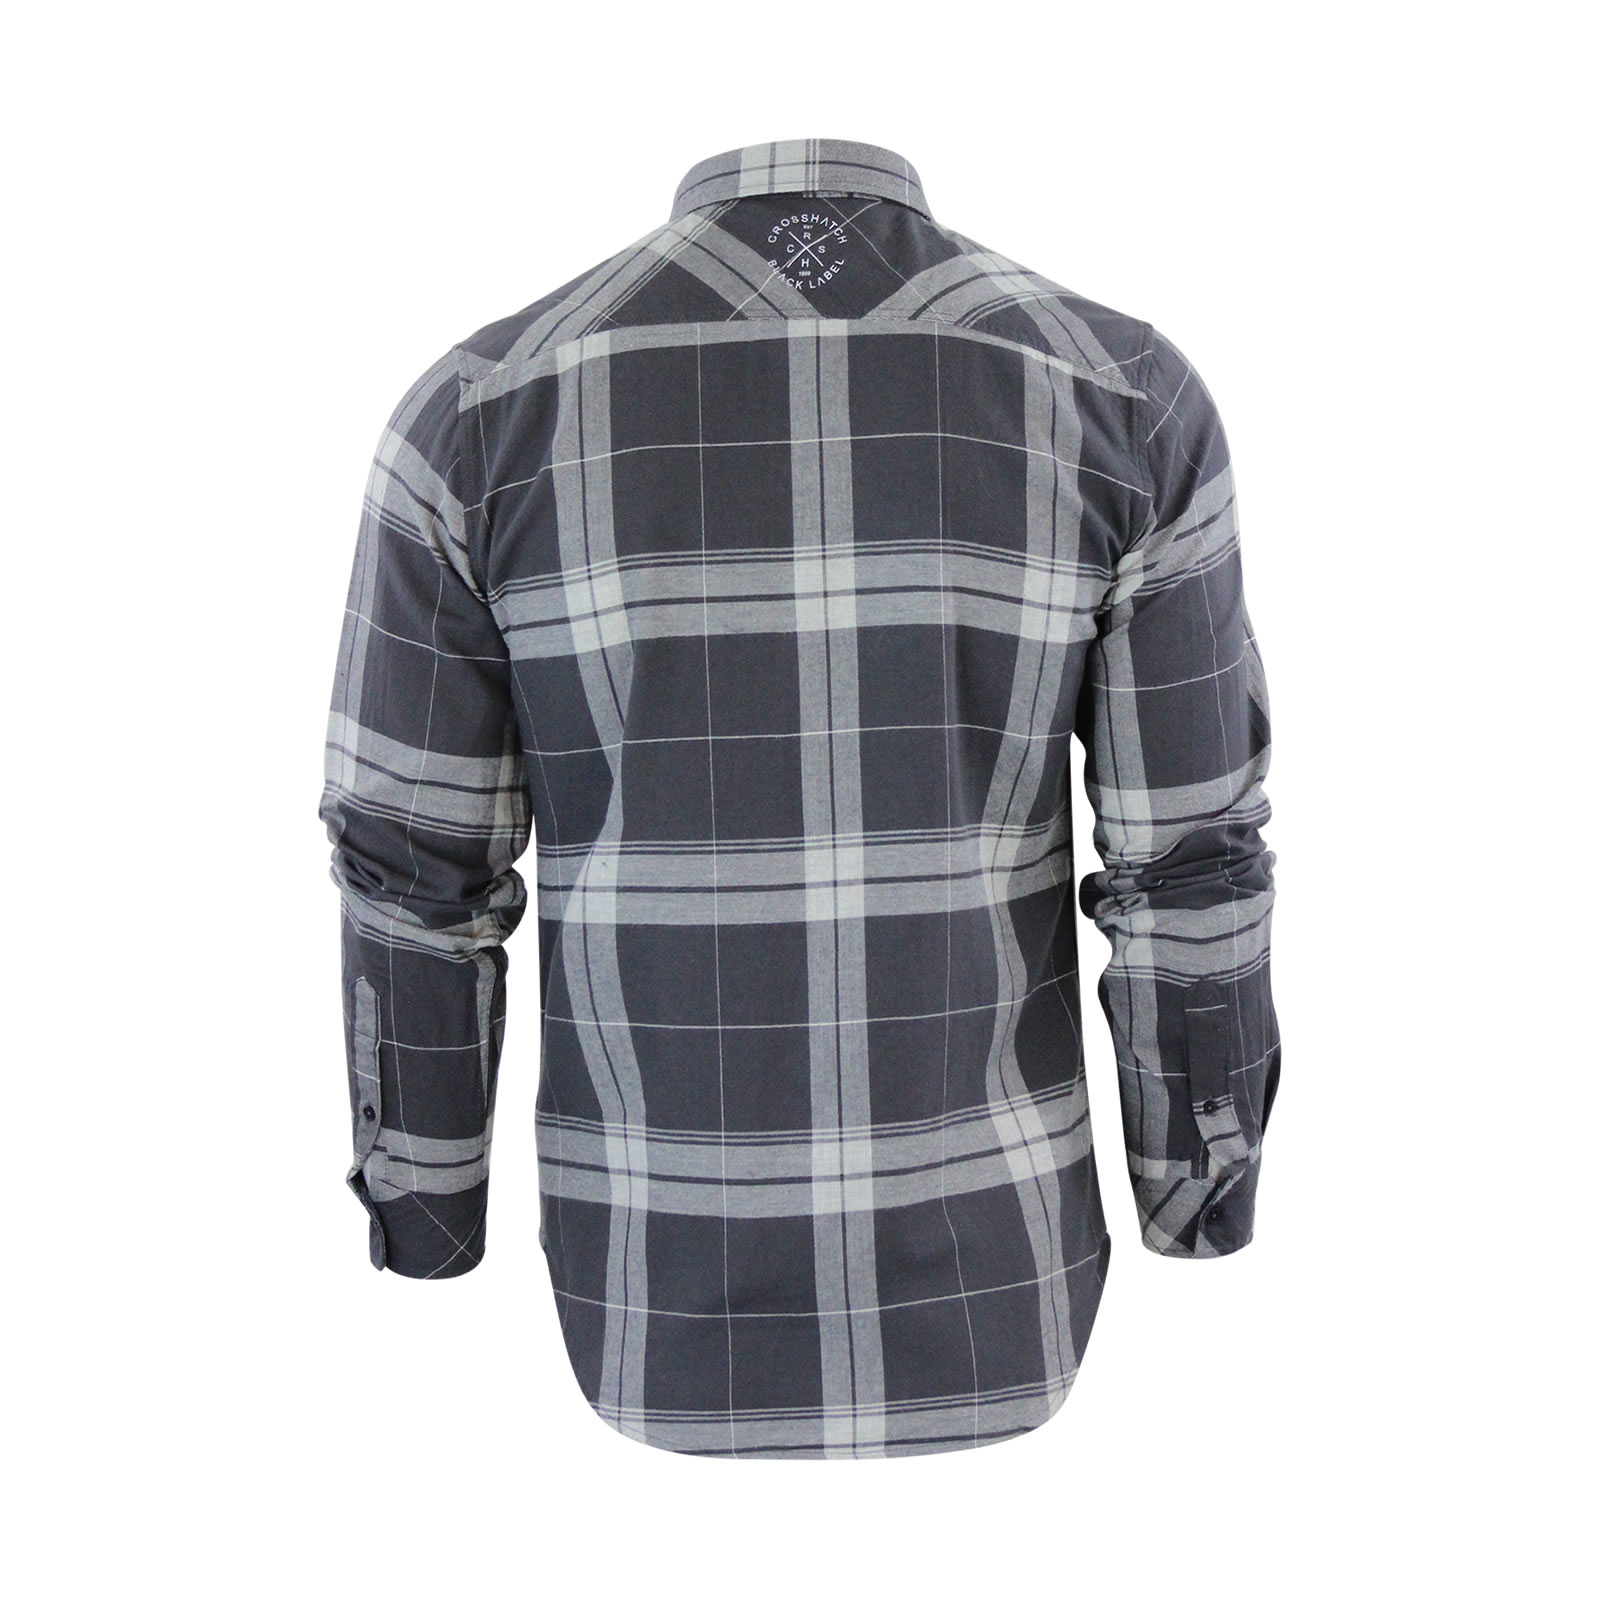 Homme-chemise-a-carreaux-crosshatch-mitty-coton-a-col-a-manches-longues-top-casual miniature 6